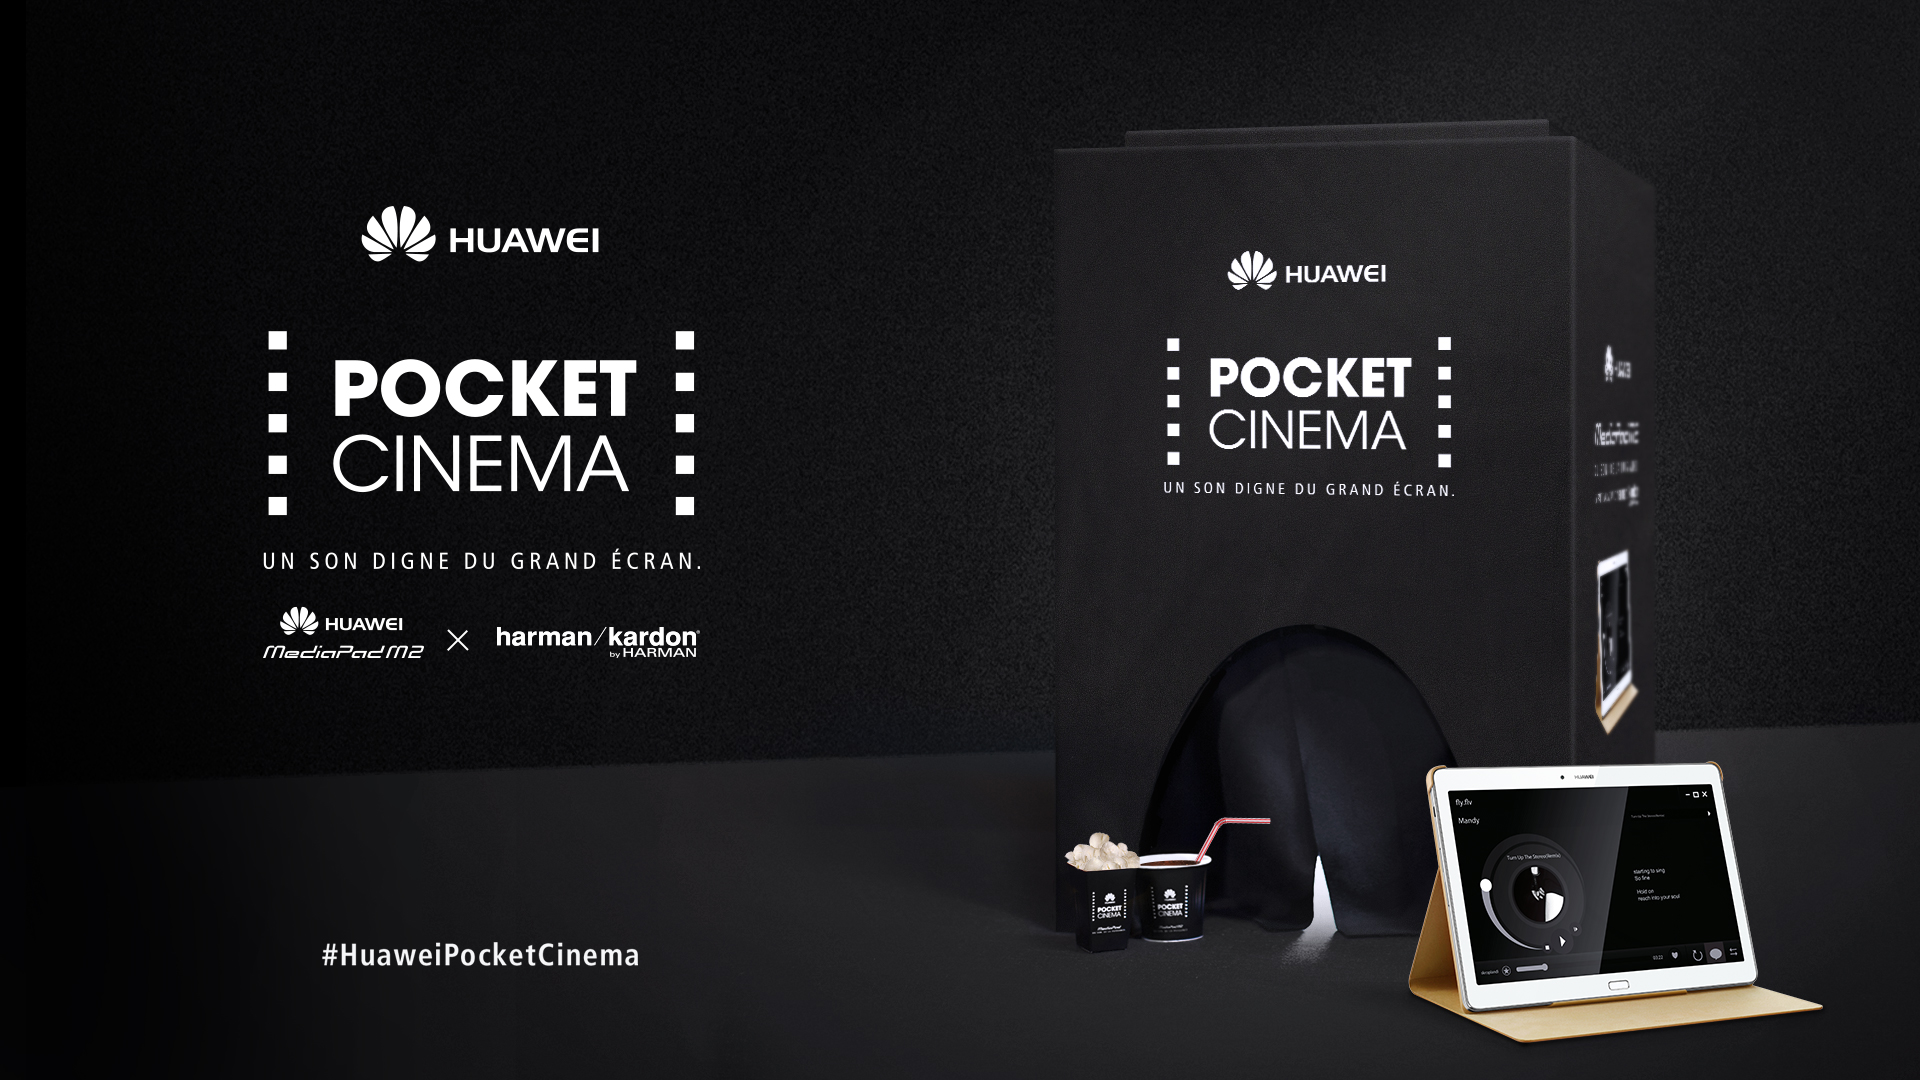 Huawei_pocket_cinema_KV2